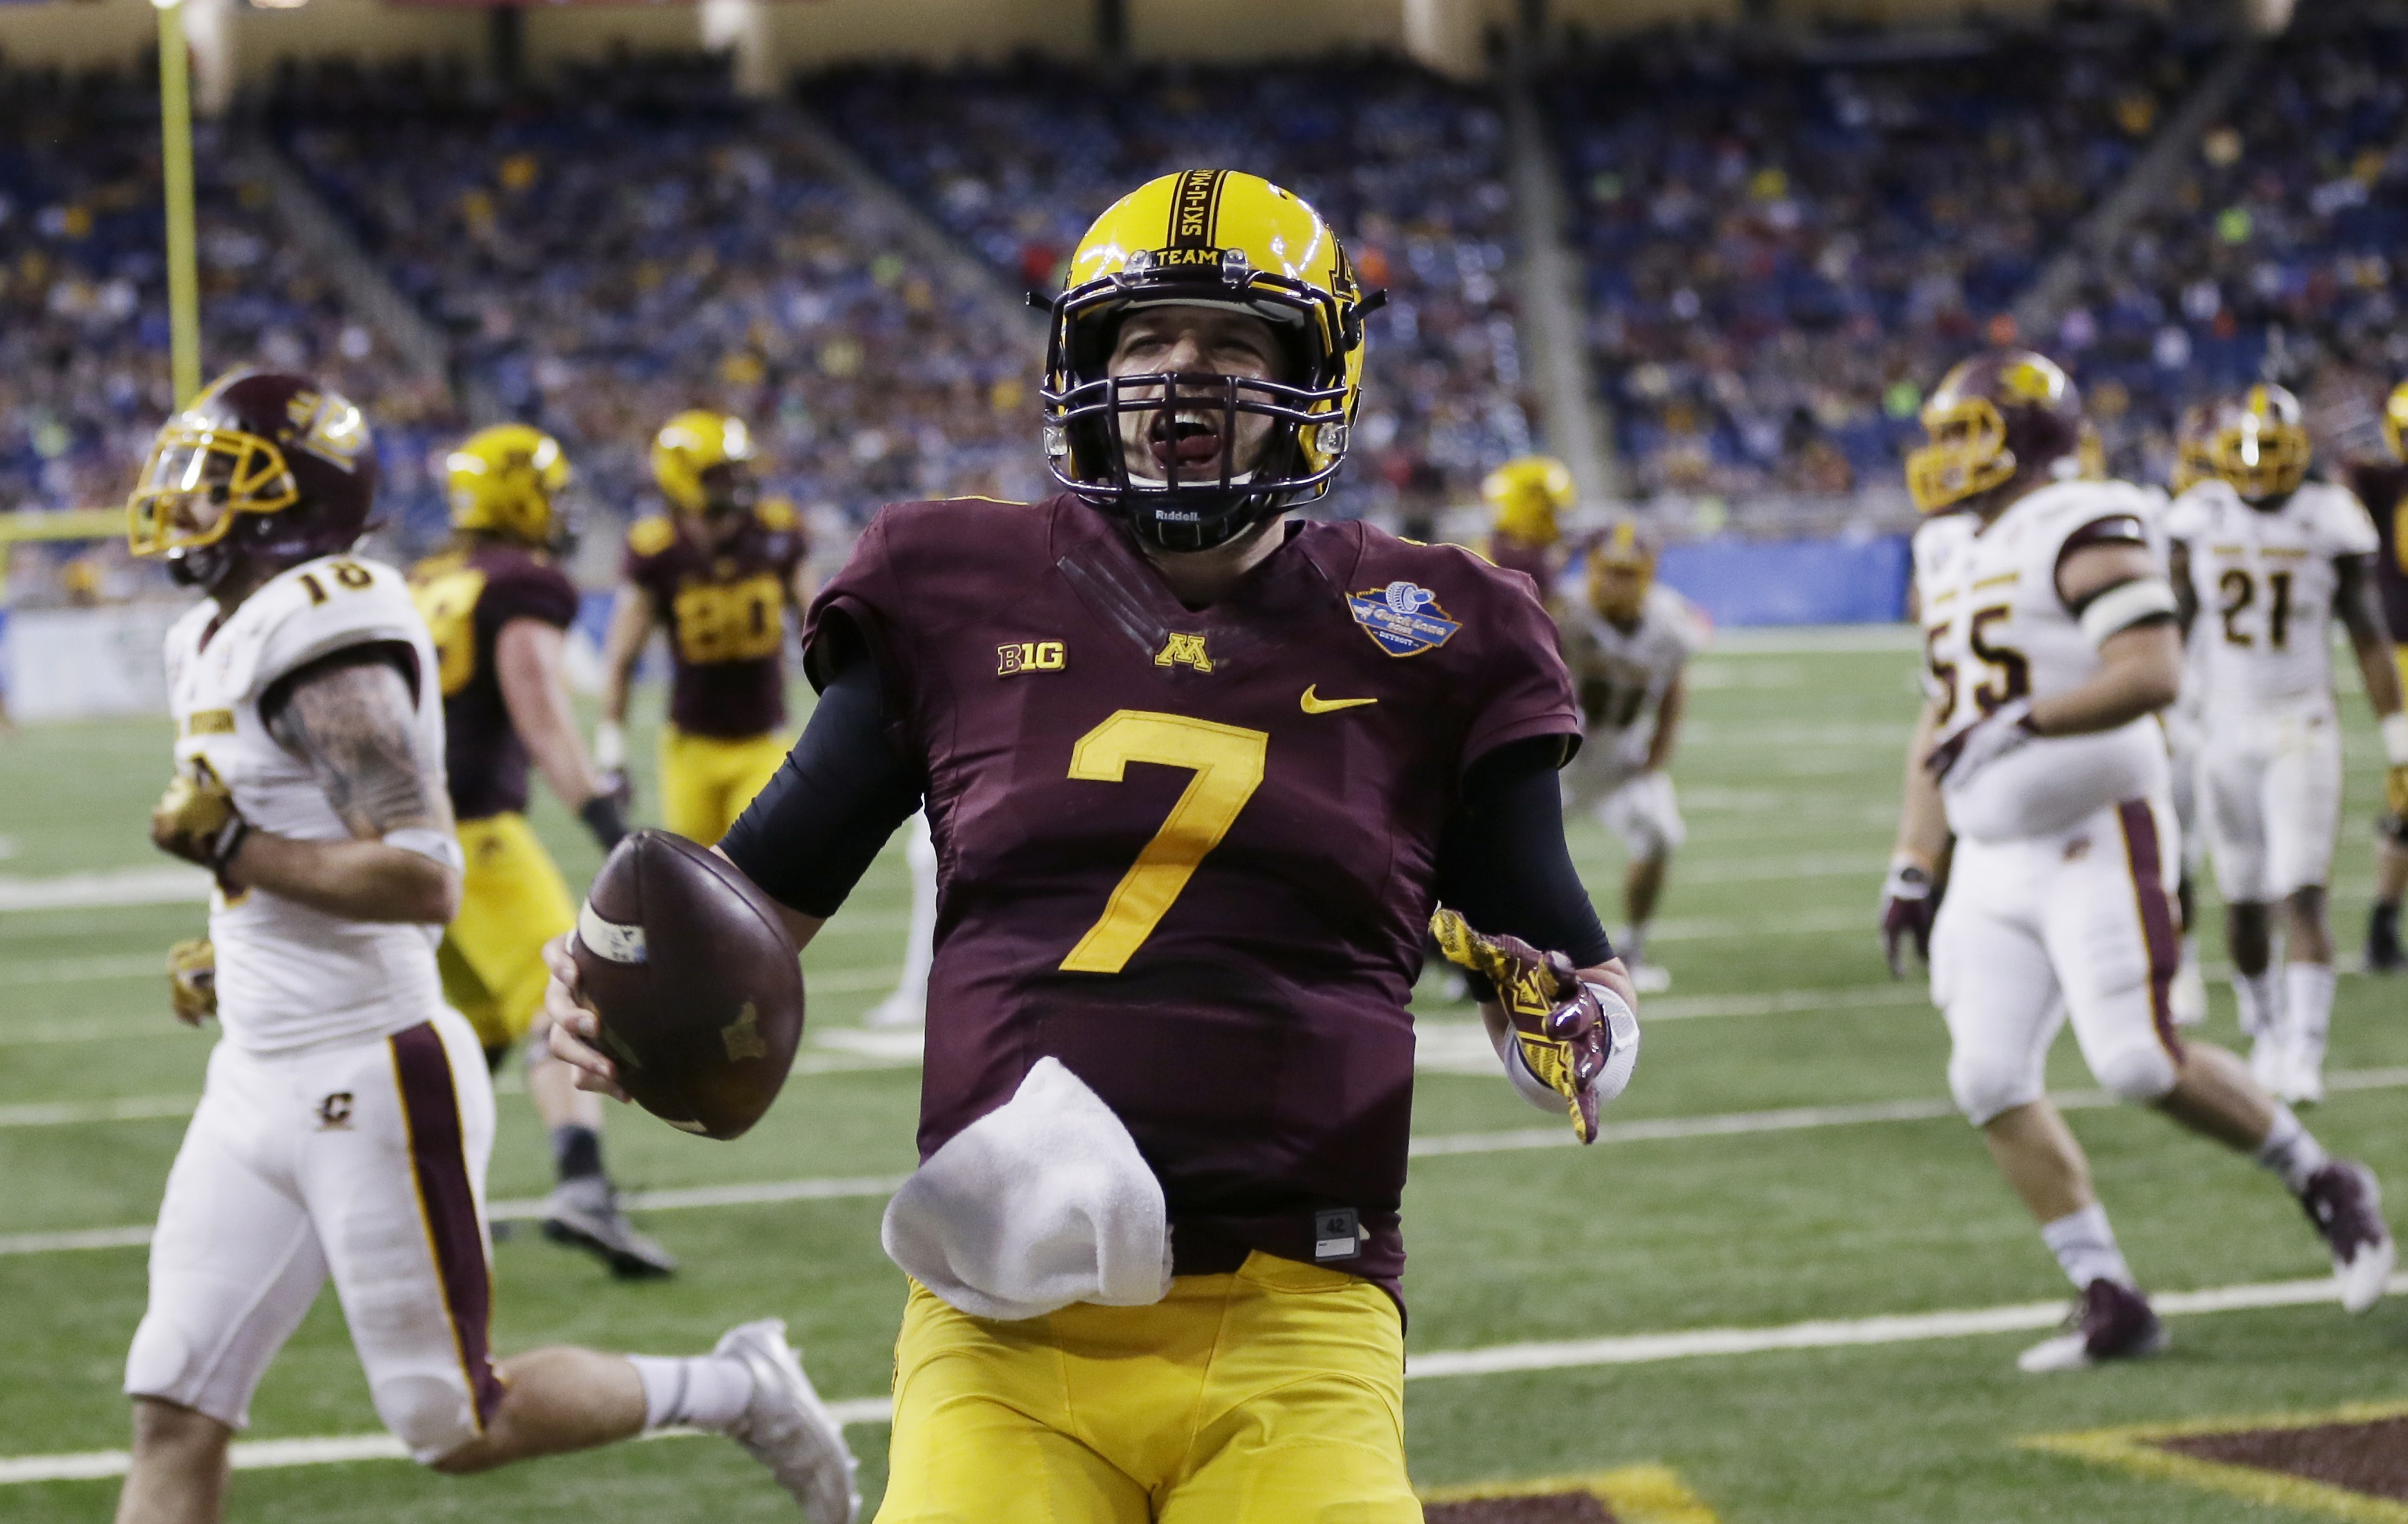 Minnesota quarterback Mitch Leidner reacts after outrunning the Central Michigan defense for the go-ahead touchdown during the second half of the Quick Lane Bowl NCAA college football game, Monday, Dec. 28, 2015, in Detroit. Minnesota defeated Central Mic